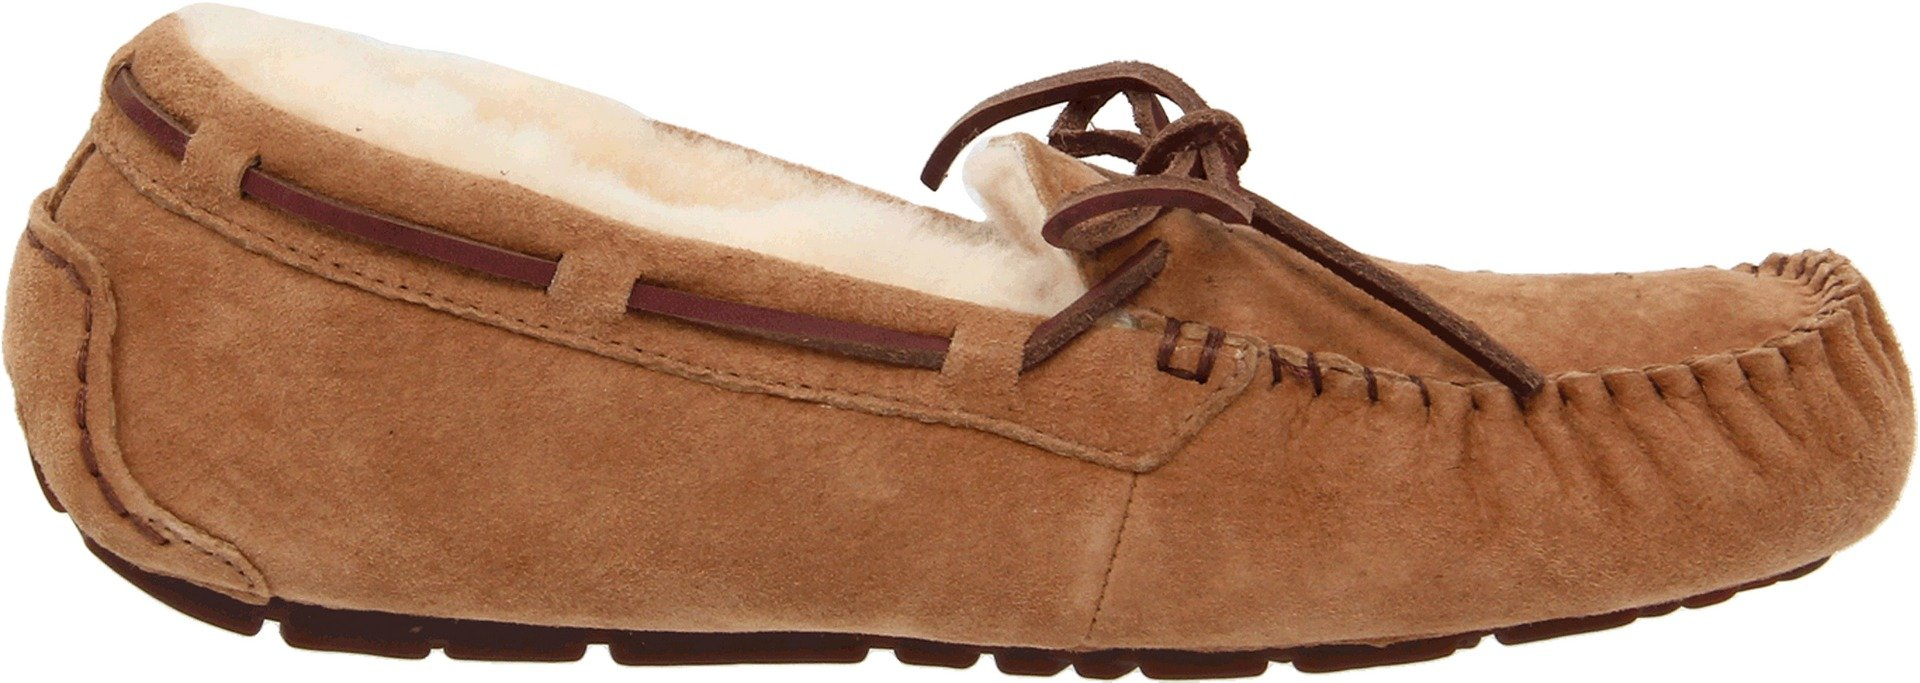 UGG Women's Dakota Moccasin, CHESTNUT, 8 B US by UGG (Image #3)